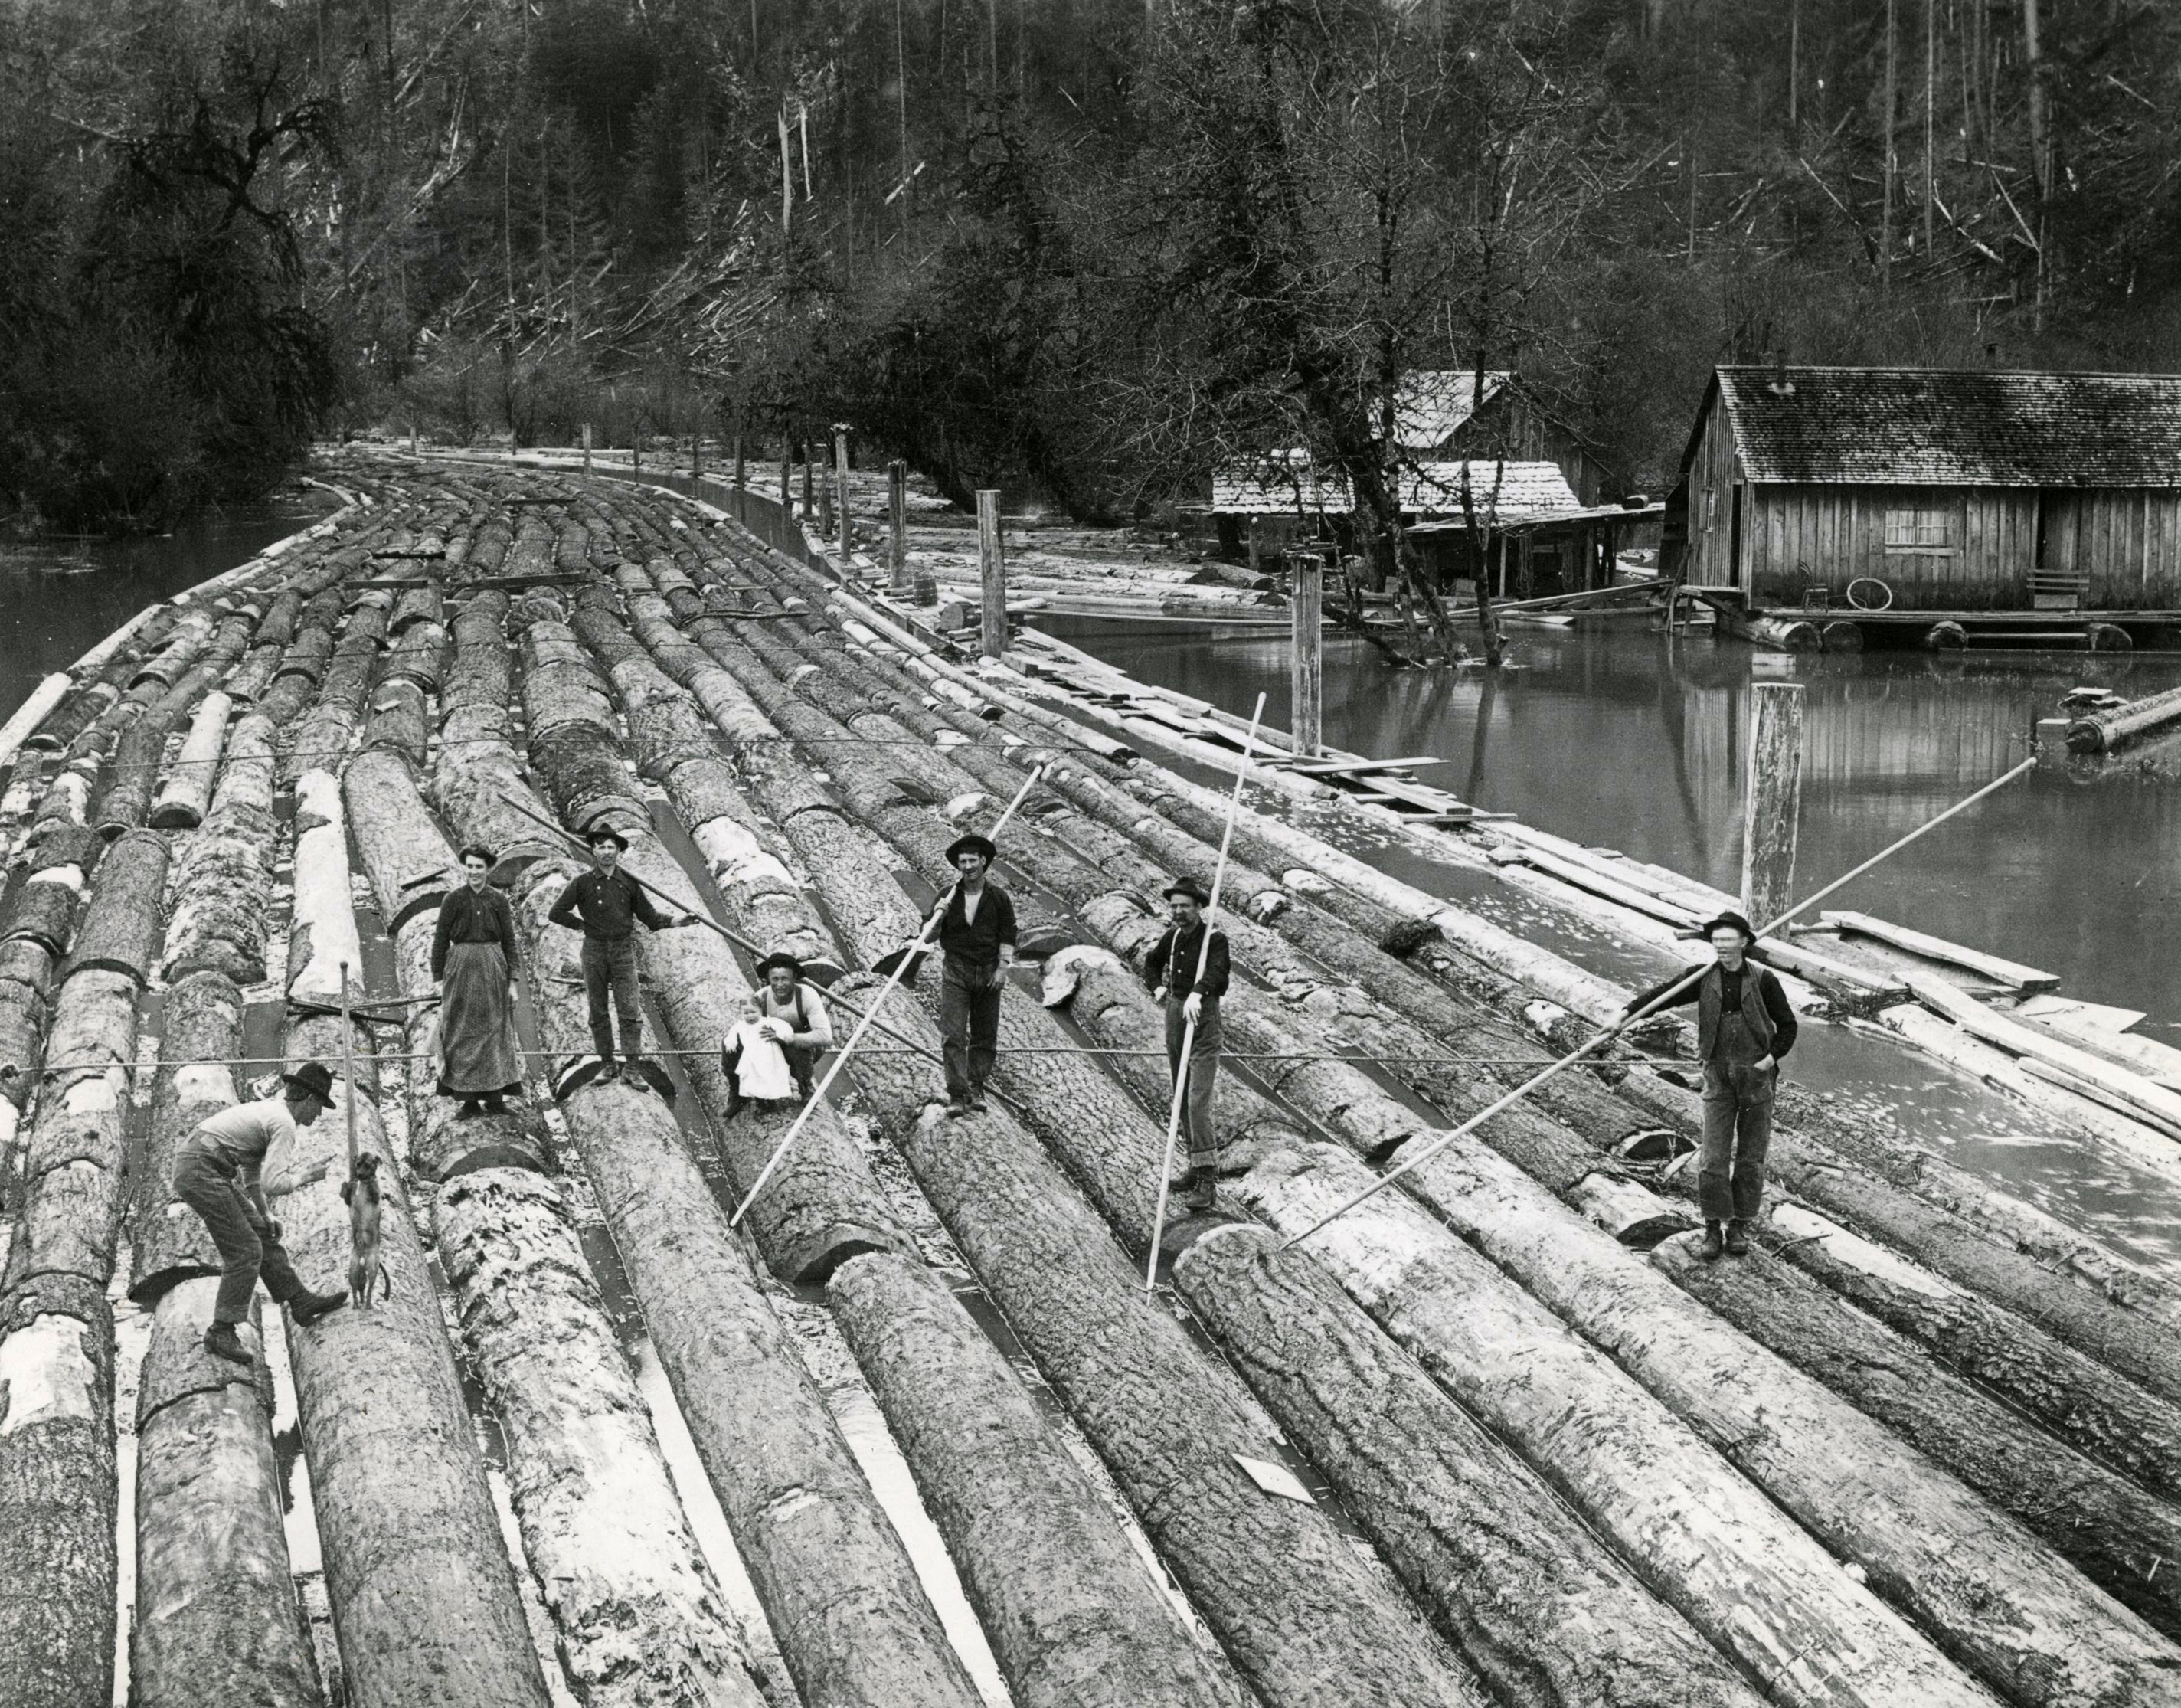 Log raft in Rinearson Slough, Columbia County